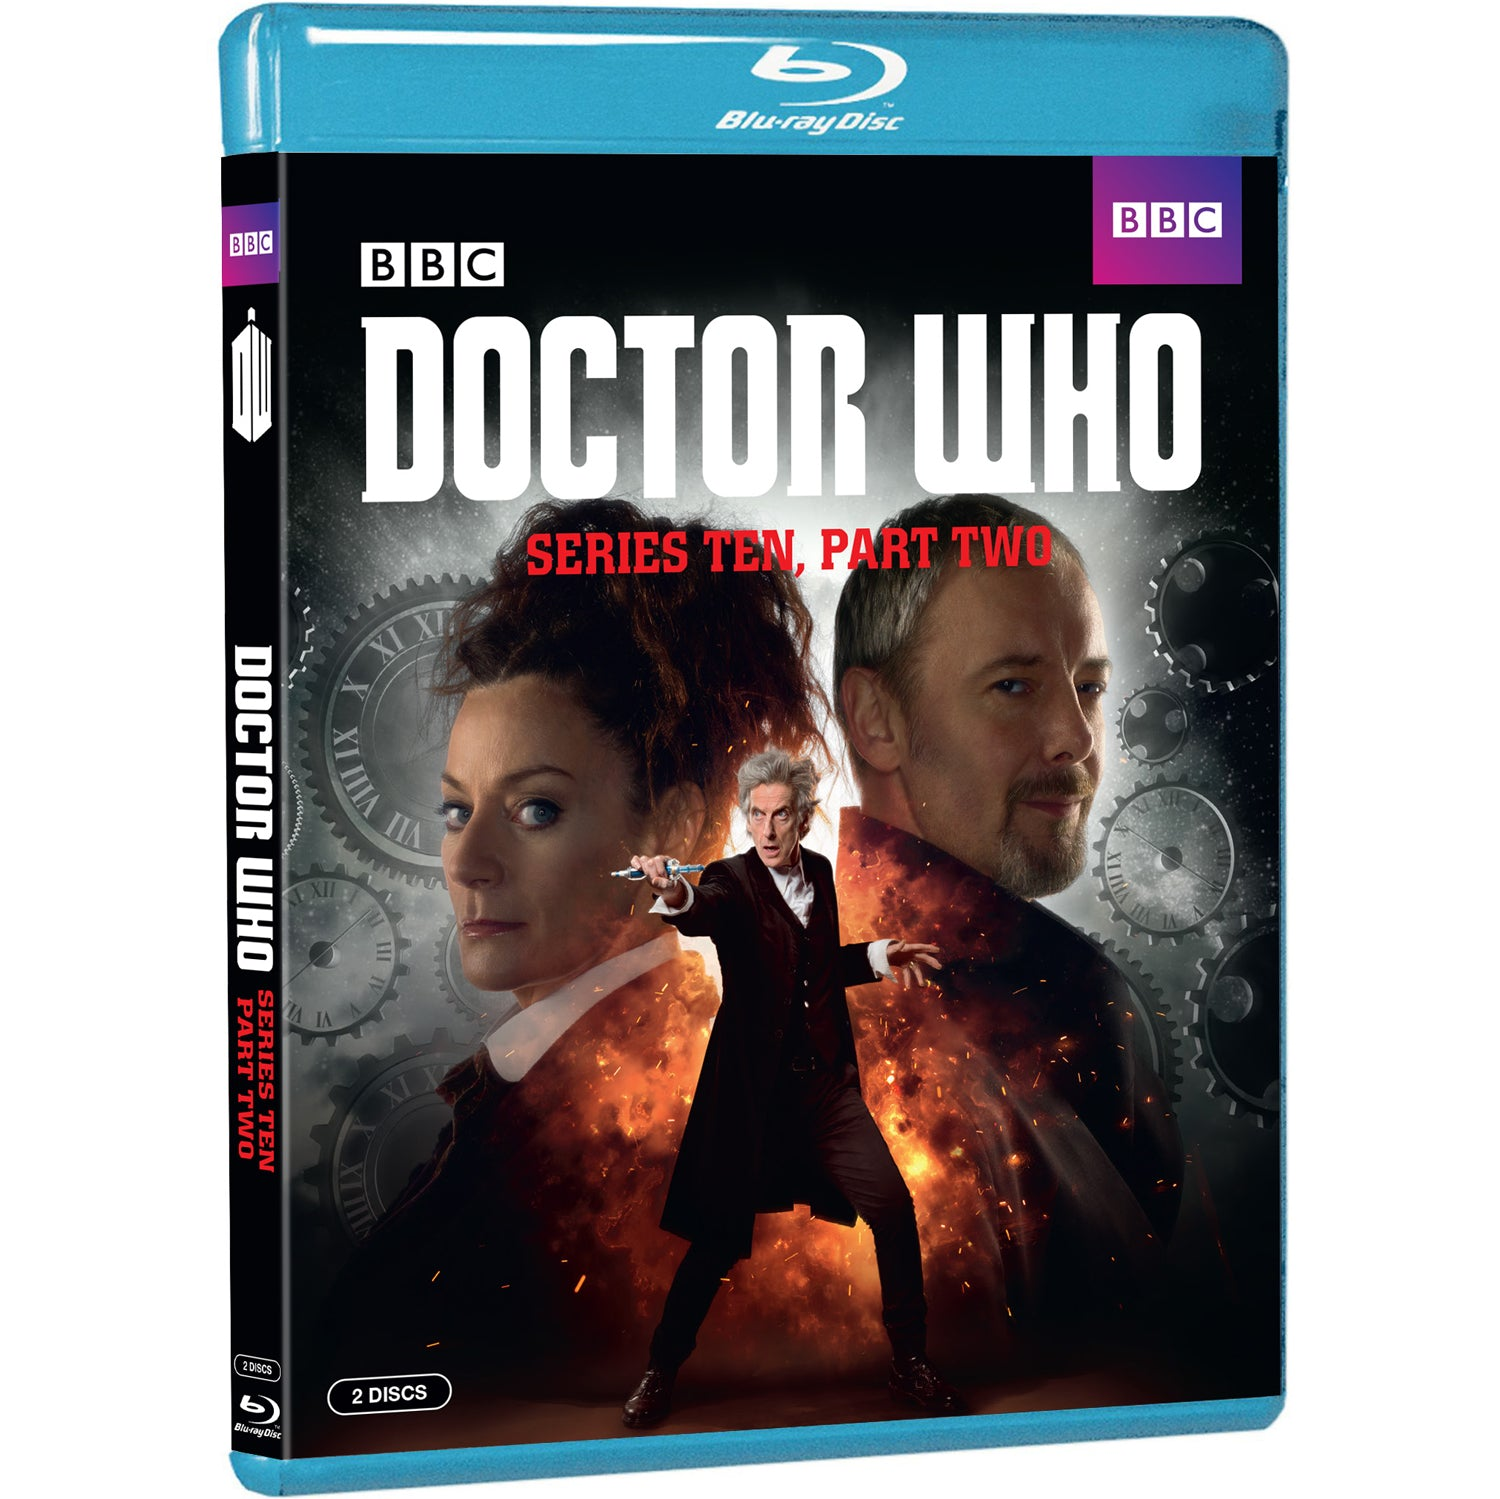 Doctor Who: Series 10 Part 2 (Blu-ray)